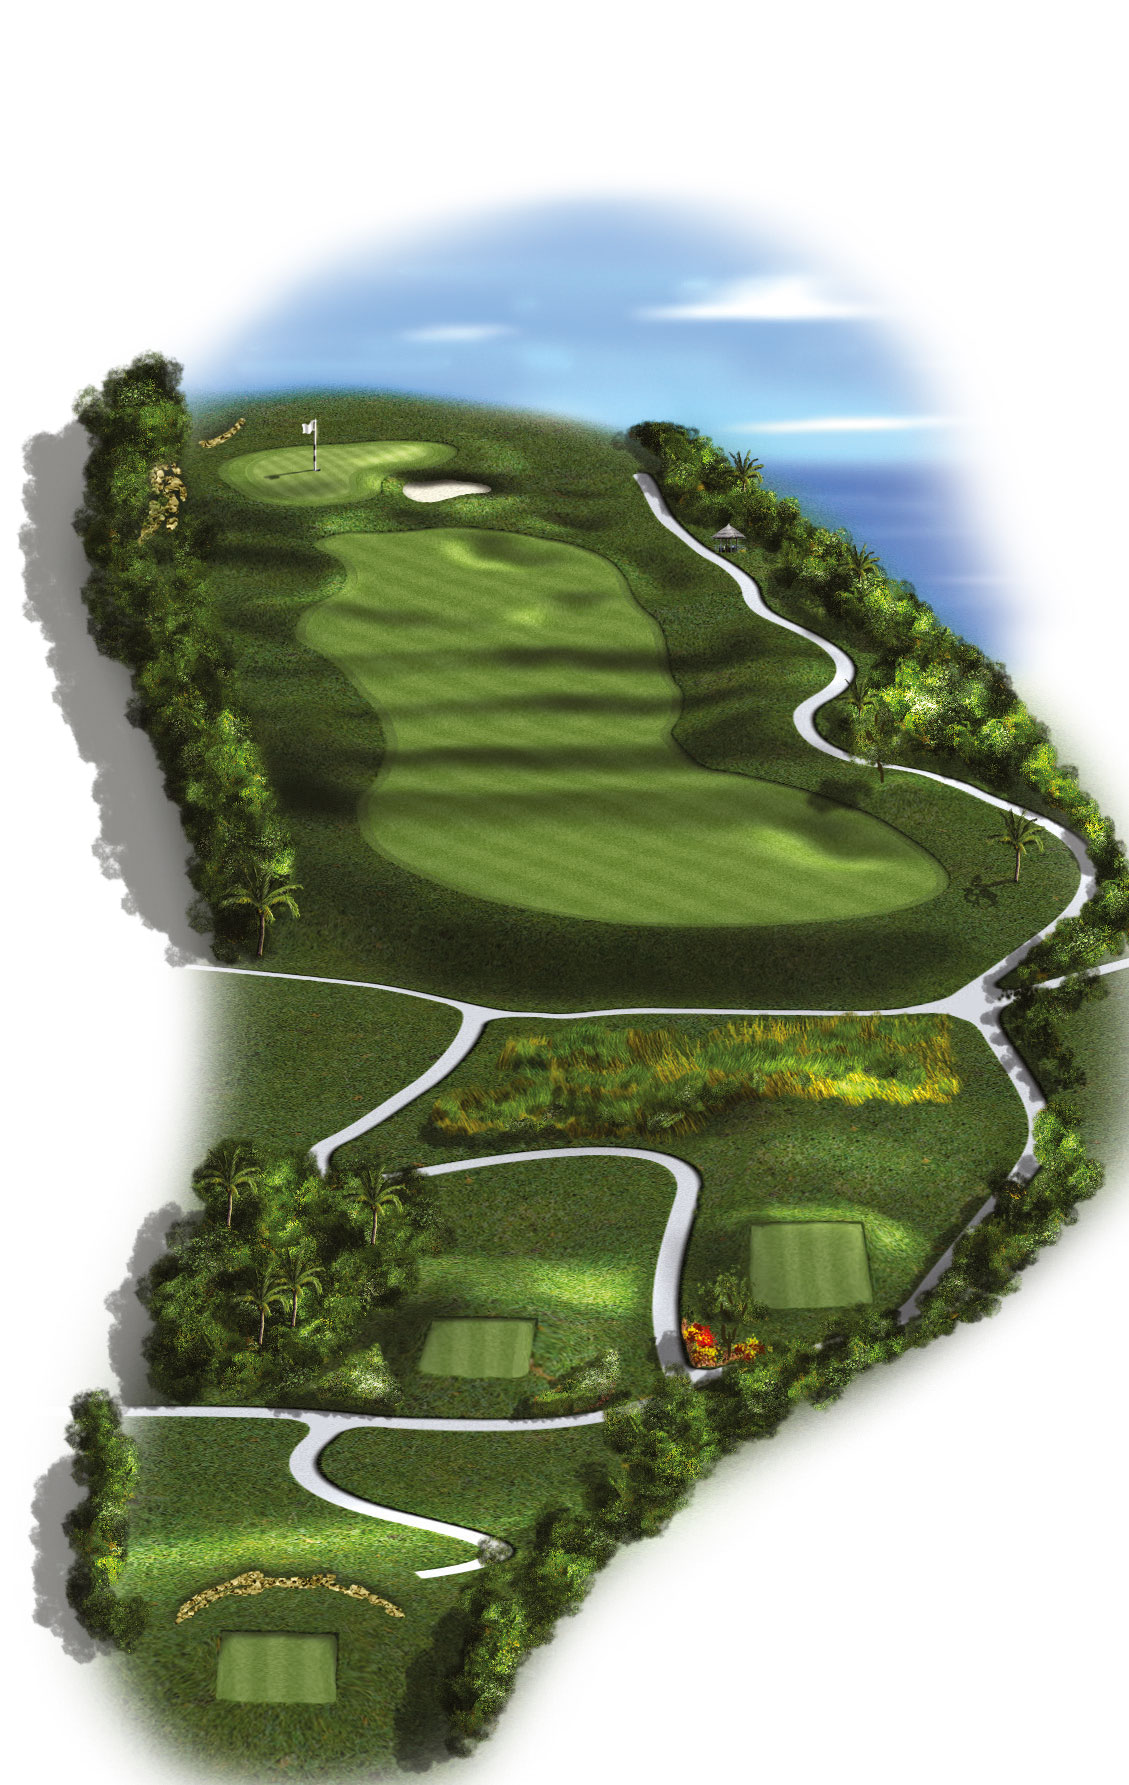 14th Hole - Par 4 (300 meters/330 yards)